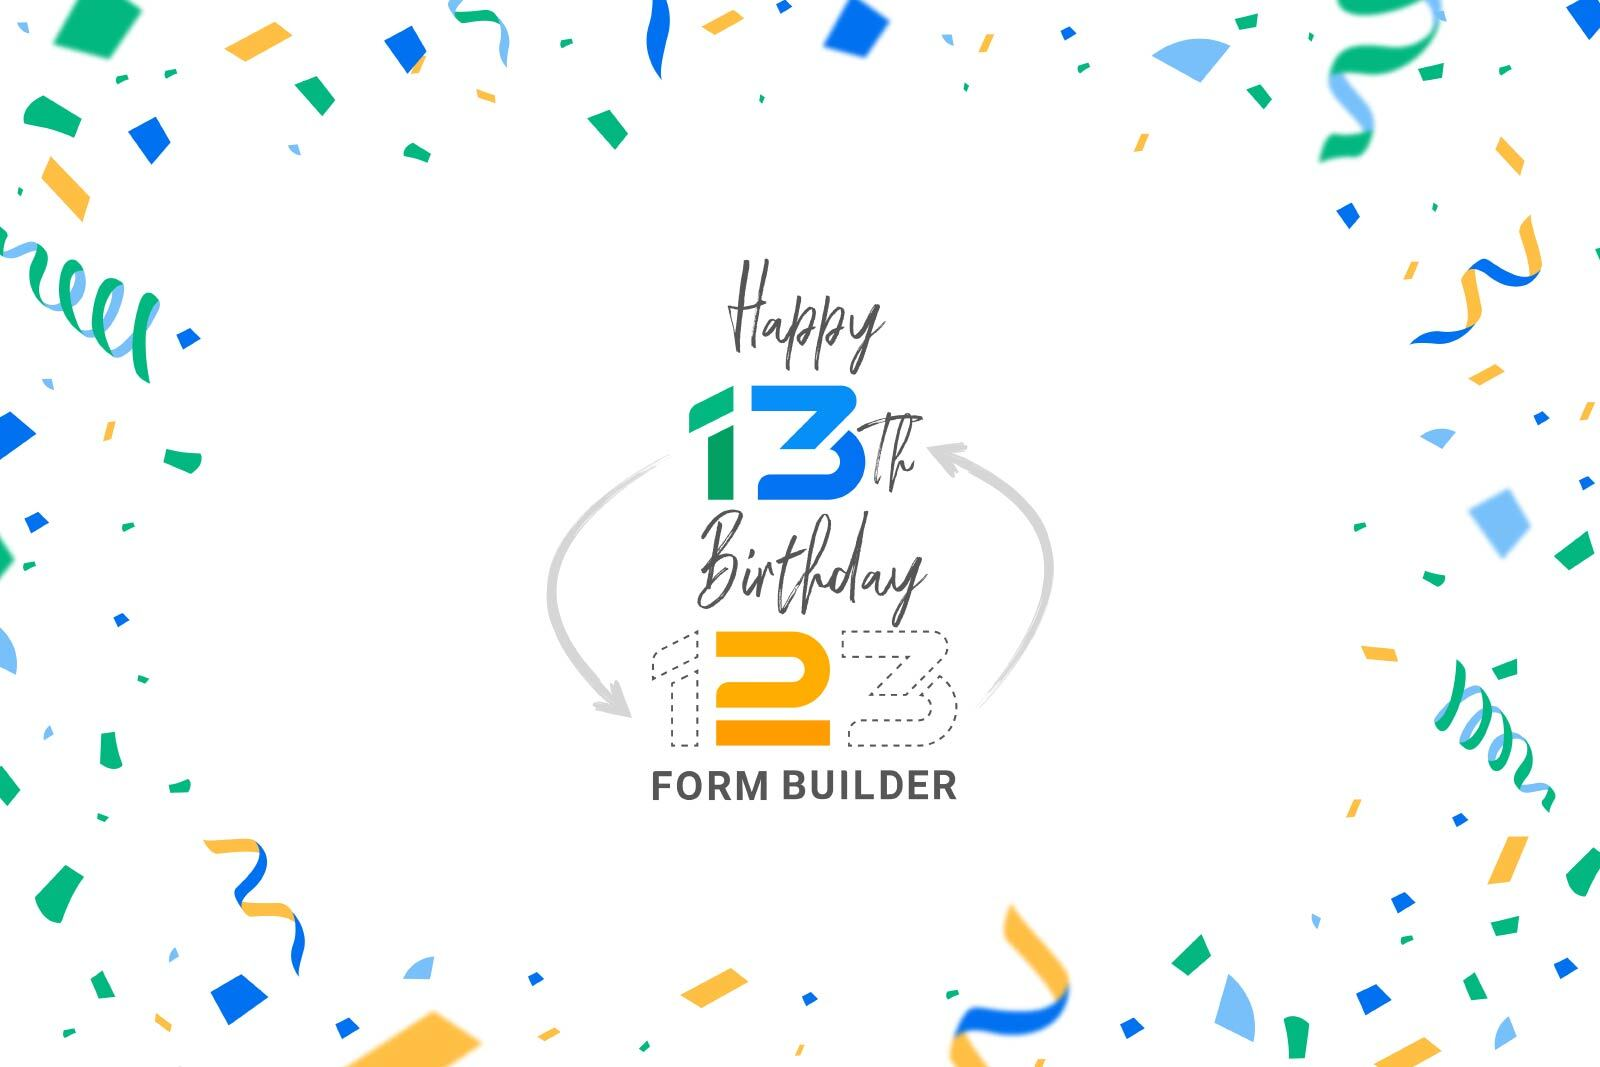 13 Awesome Things 123 Form Builder Did in 13 Years